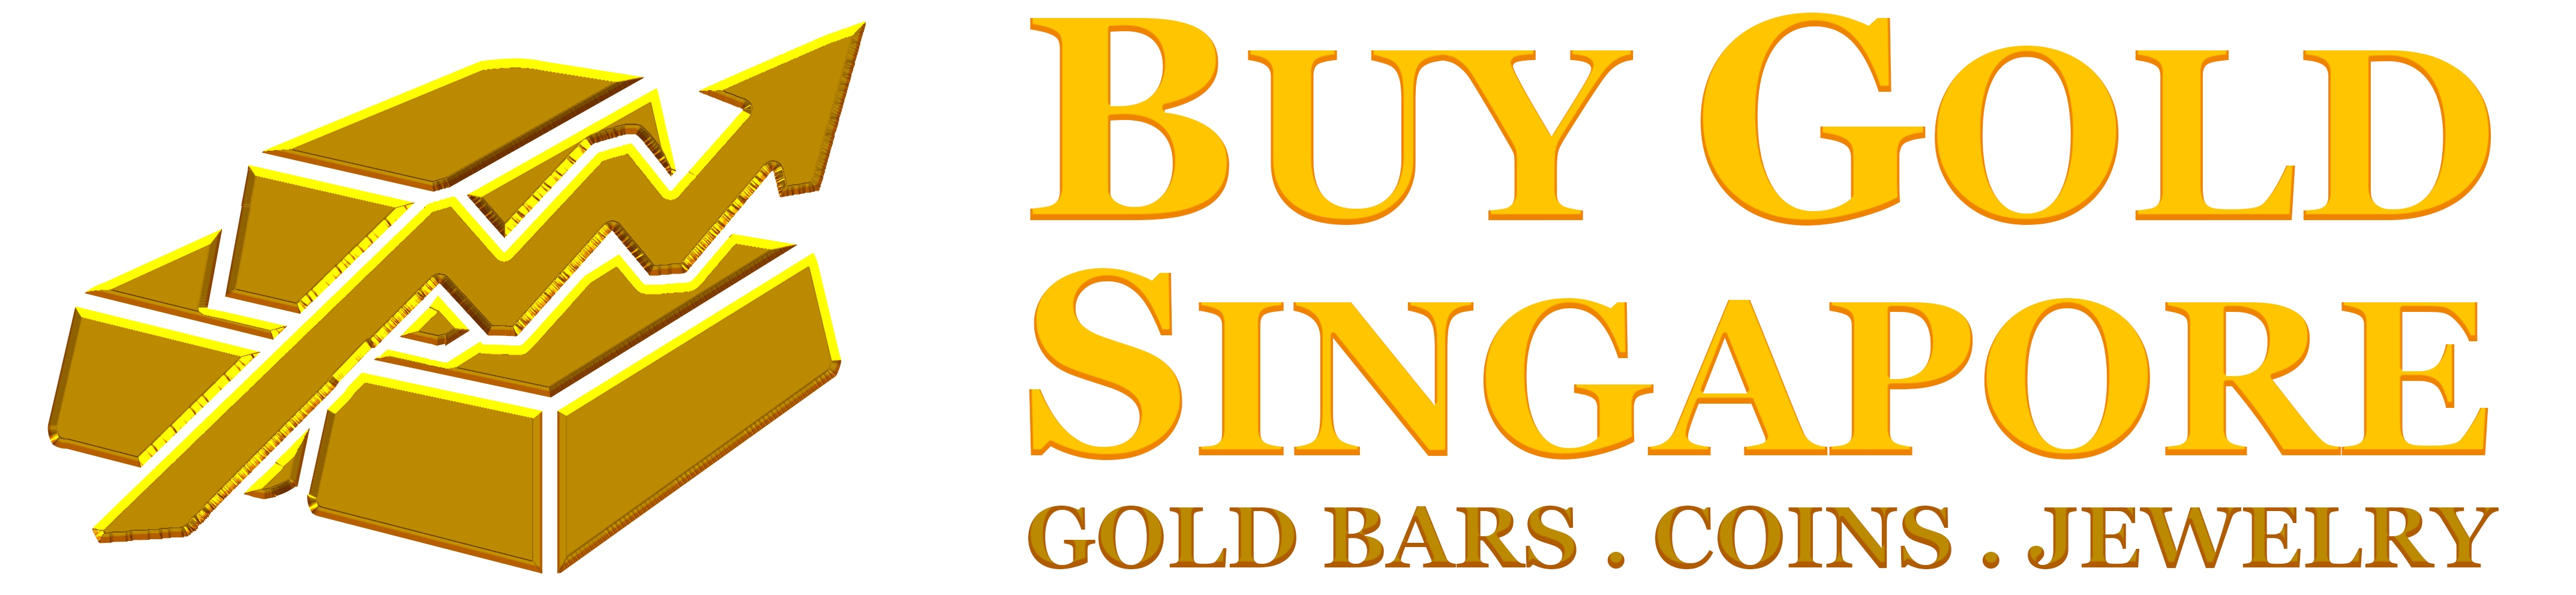 BuyGold.sg, a division of Gold Price Singapore Pte Ltd